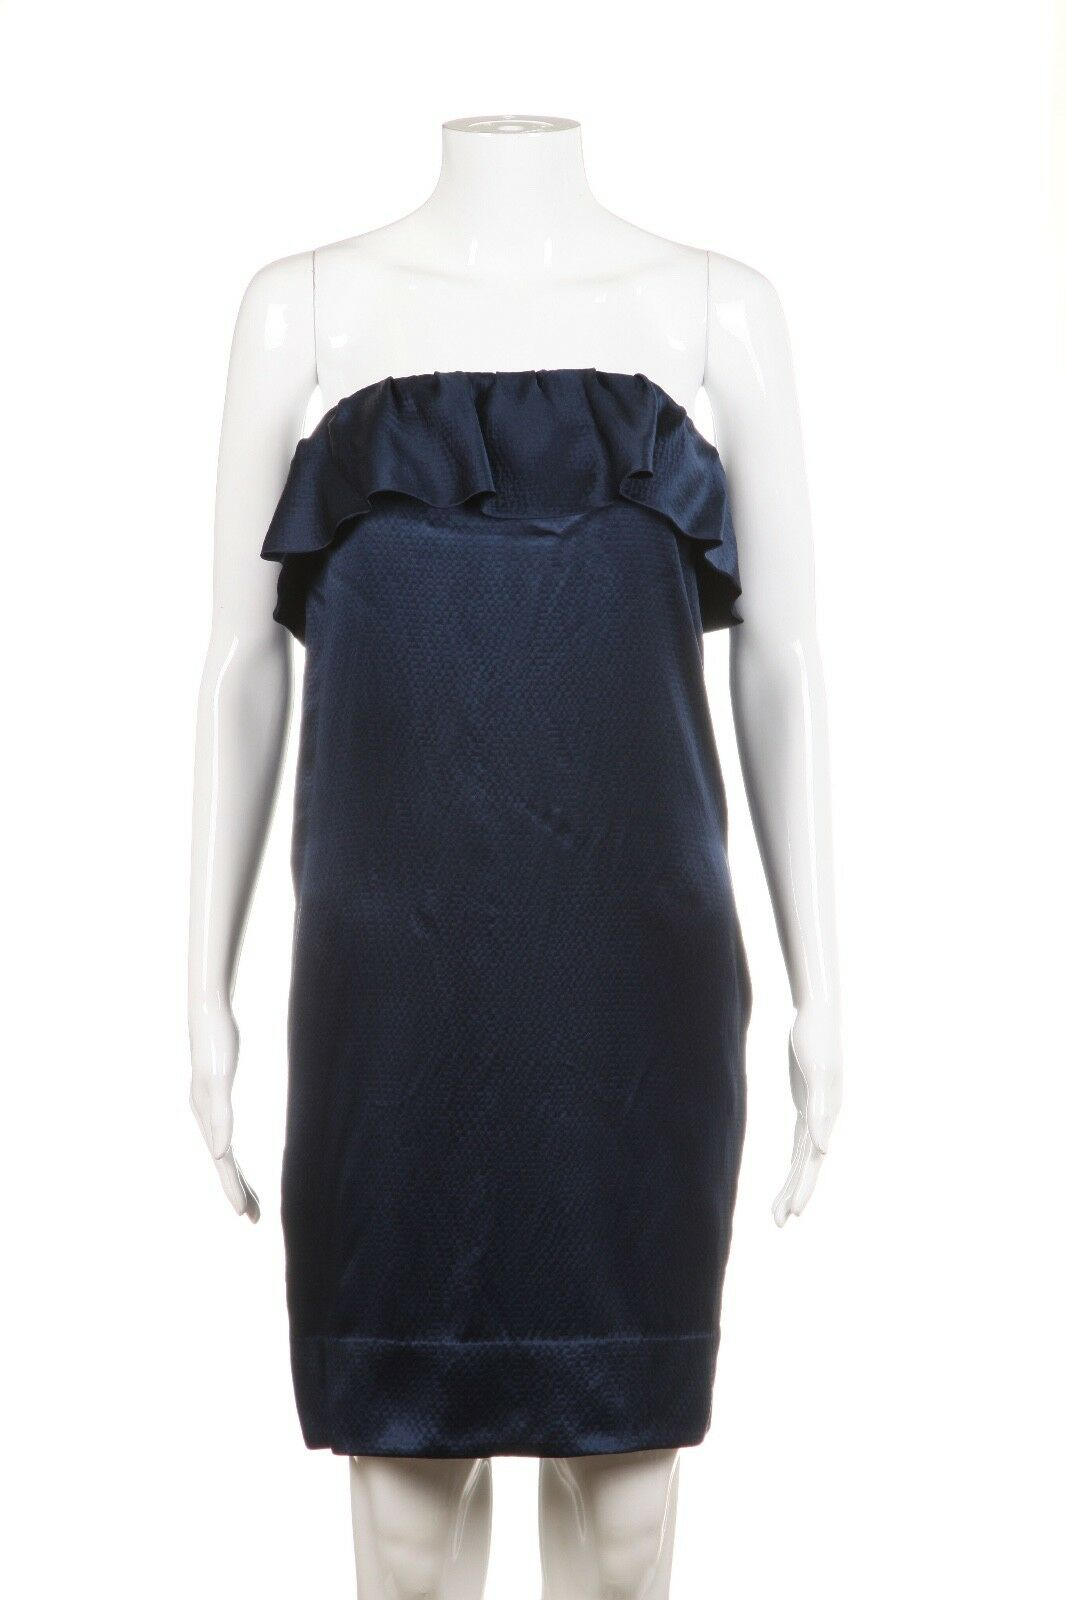 3.1 PHILLIP LIM Midnight Blue Strapless 100% Silk Dress Size 4